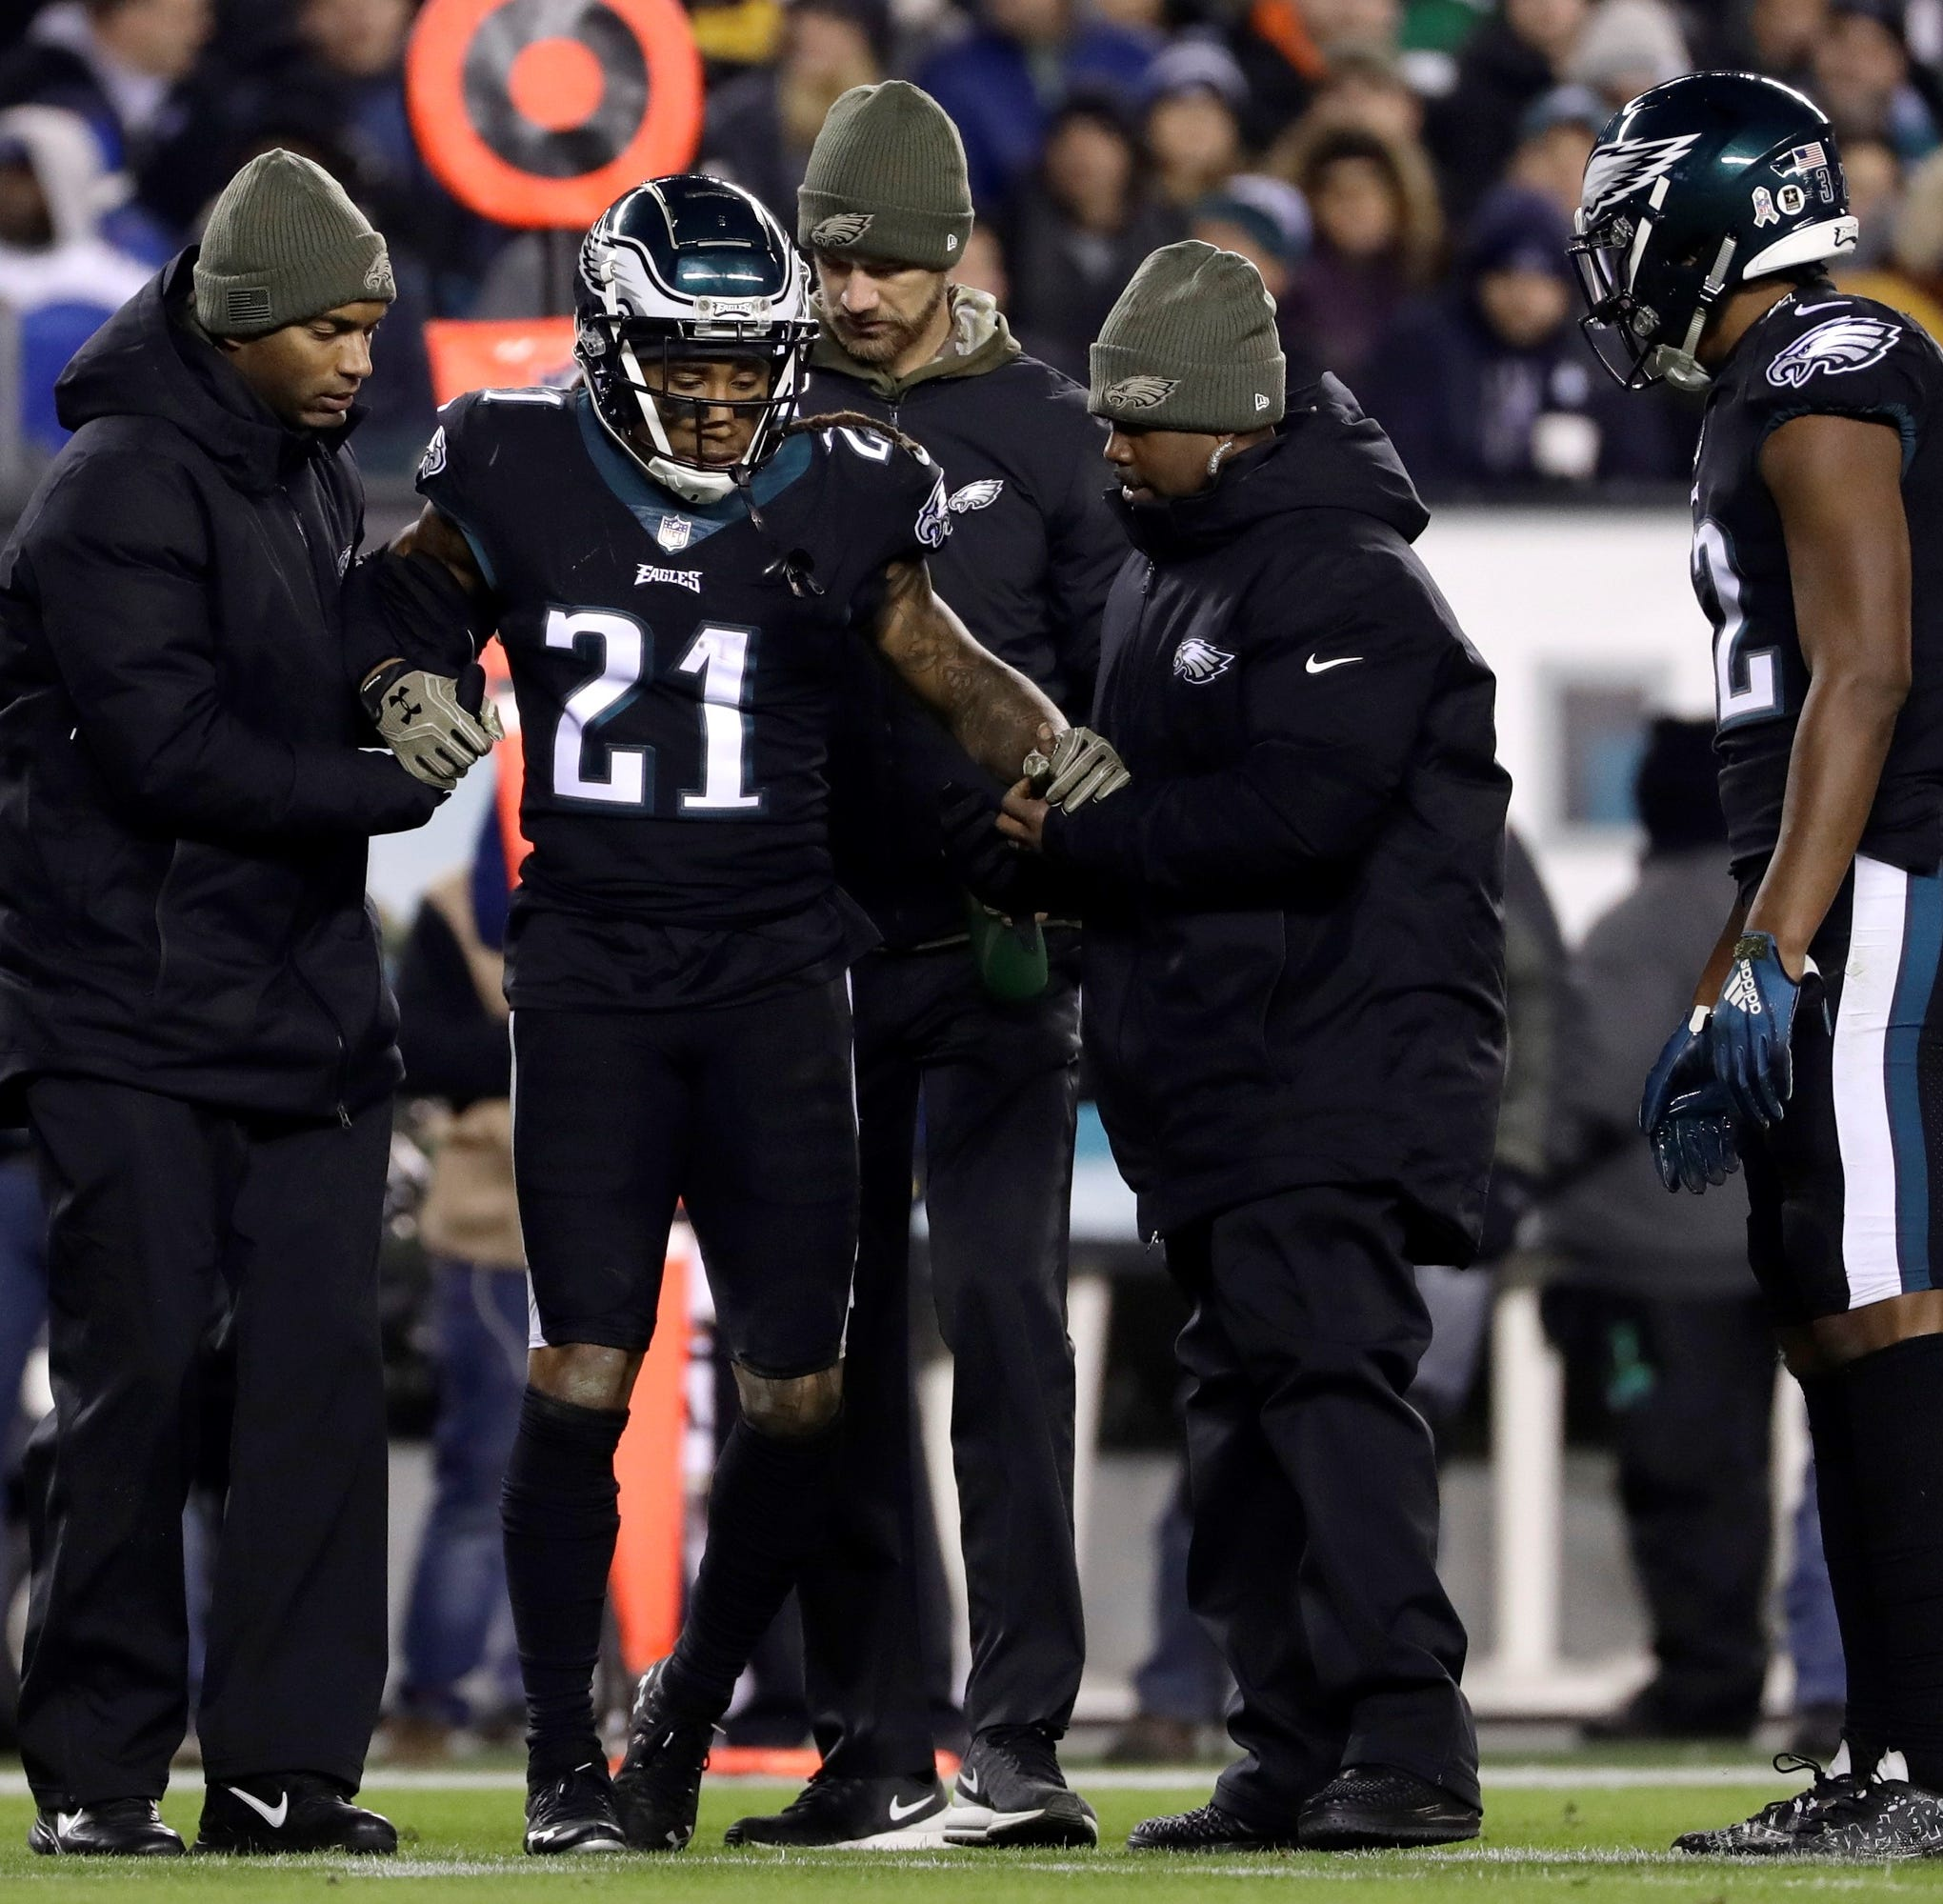 Philadelphia Eagles suffer another blow, lose cornerback Ronald Darby for season